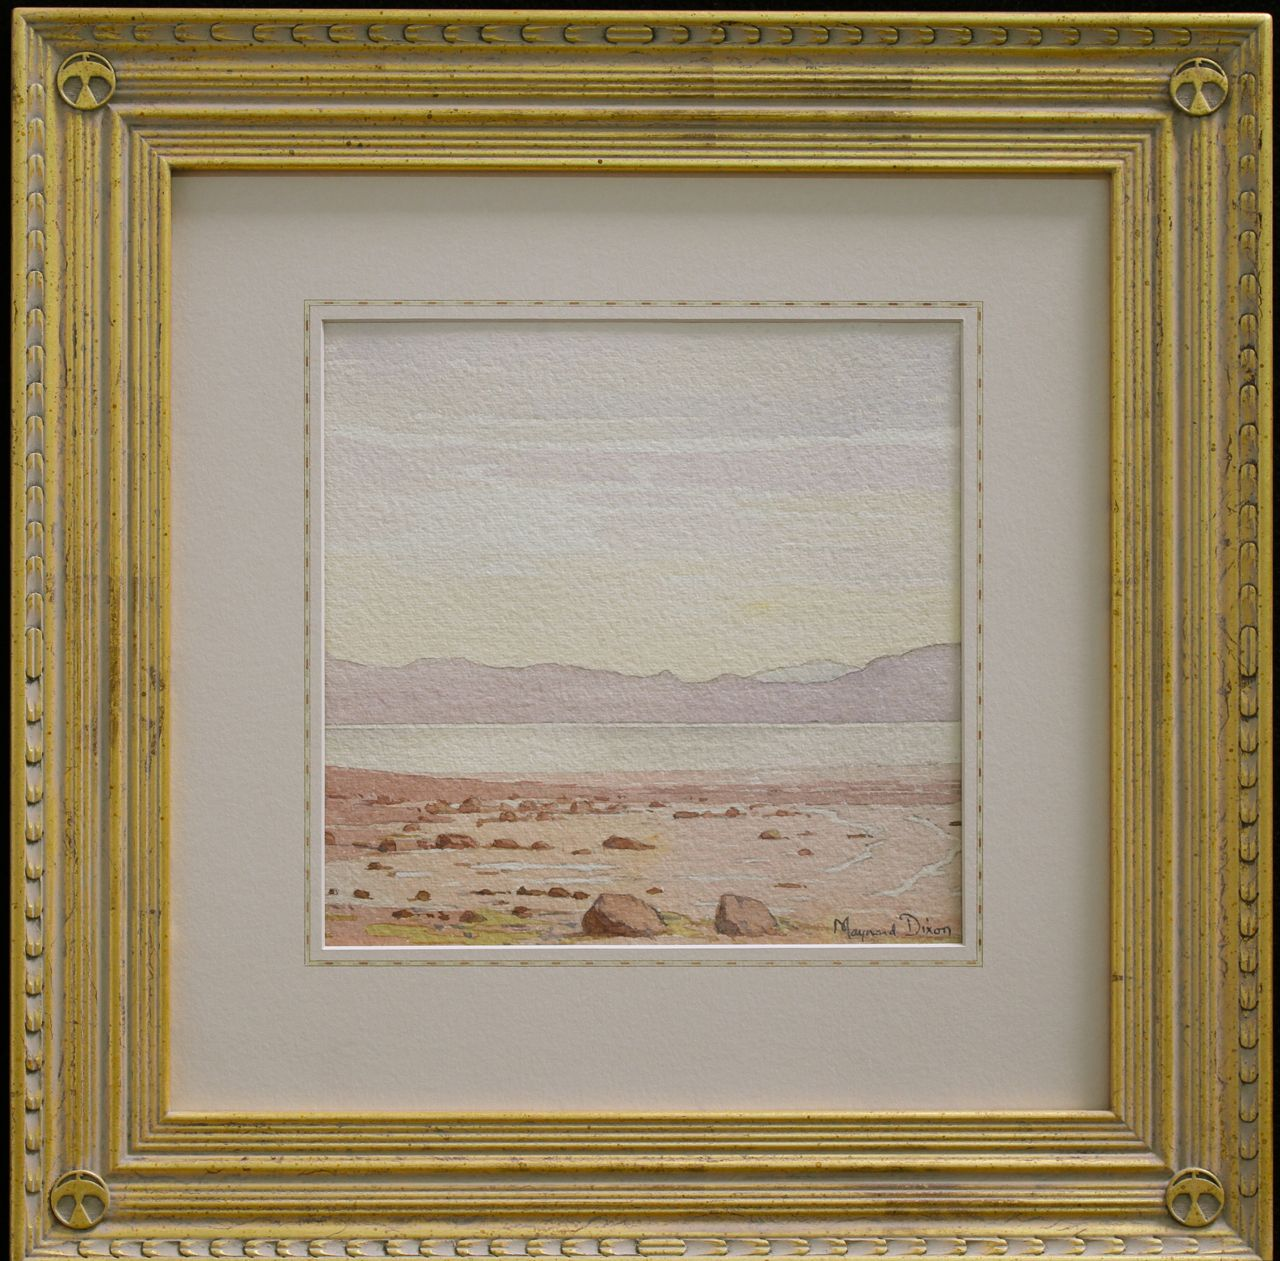 Maynard Dixon Watercolor With Dixon Custom Frame And French